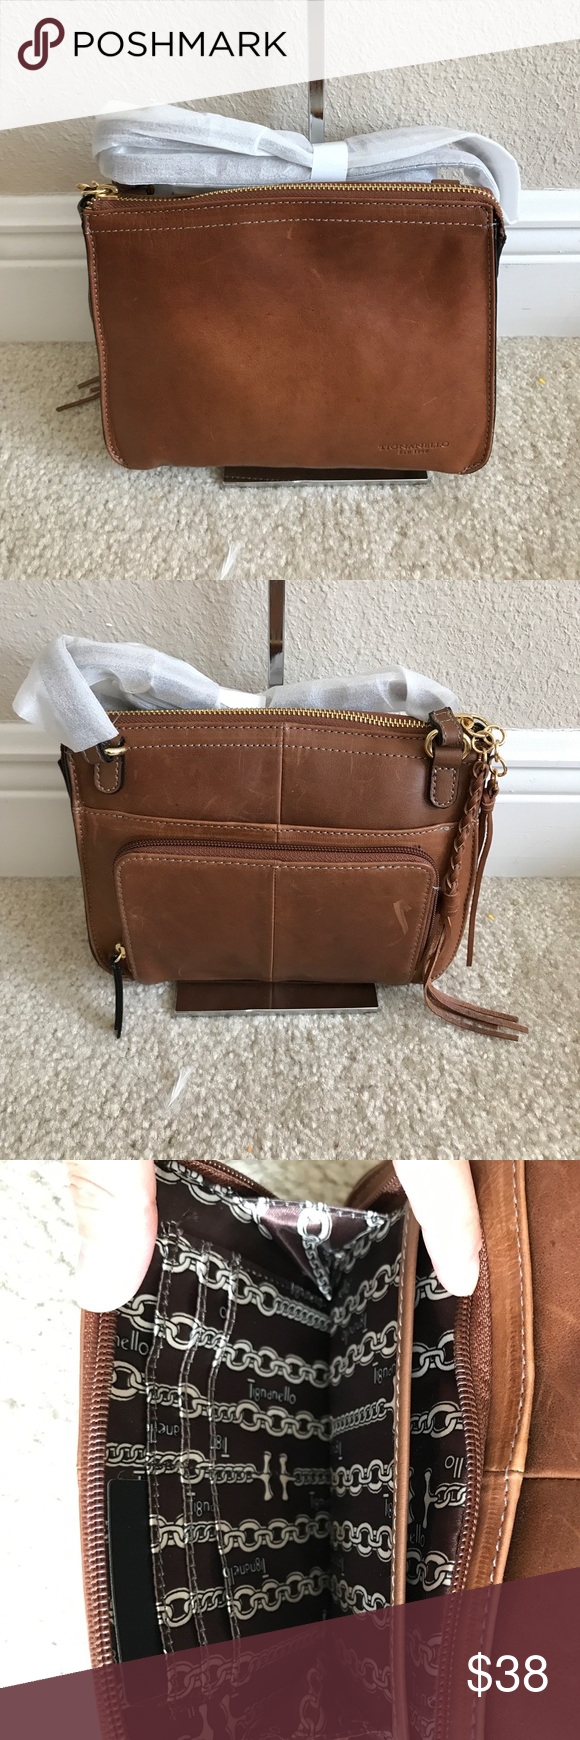 Tignanello Vintage Leather Crossbody Carson In Good Condition Has Some Scratches And Scuff Marks